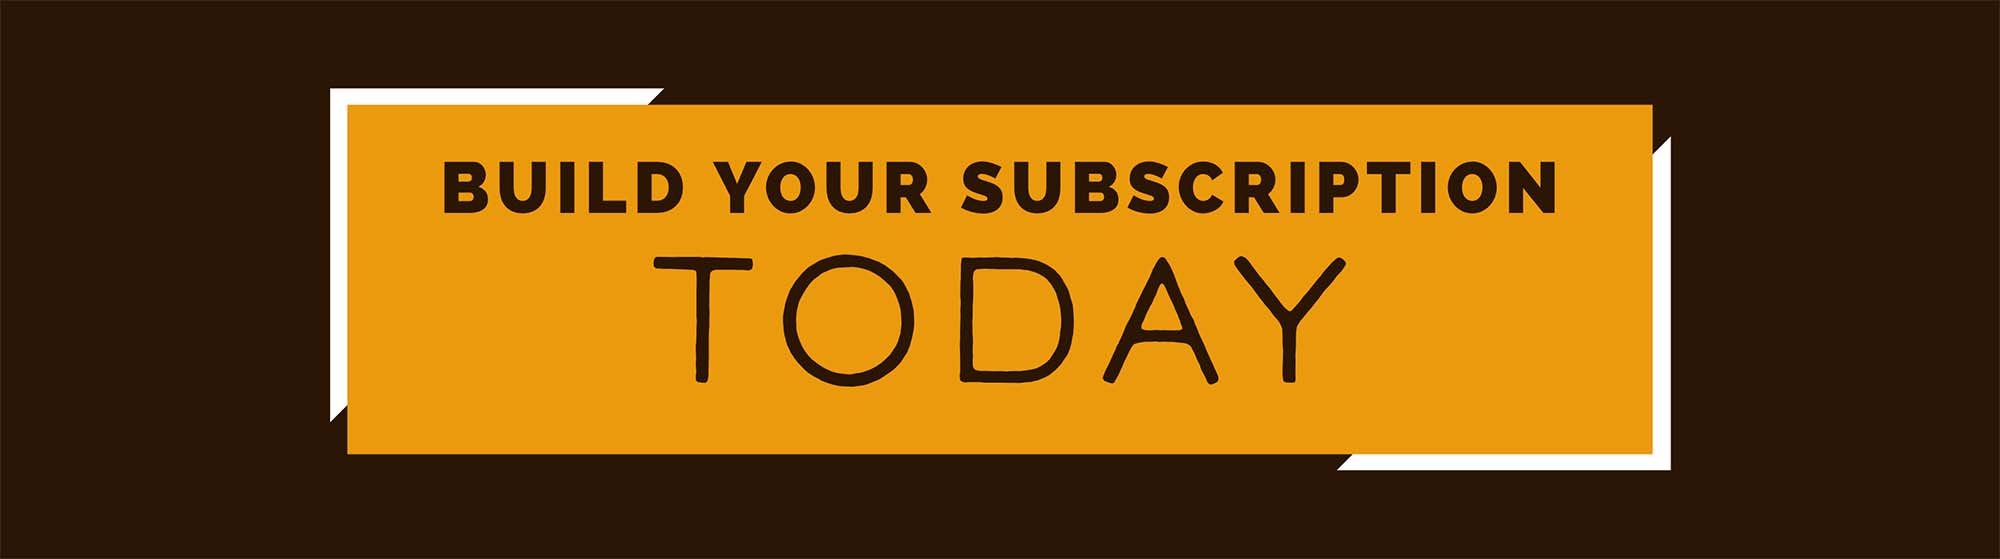 Build Your Subscription Today